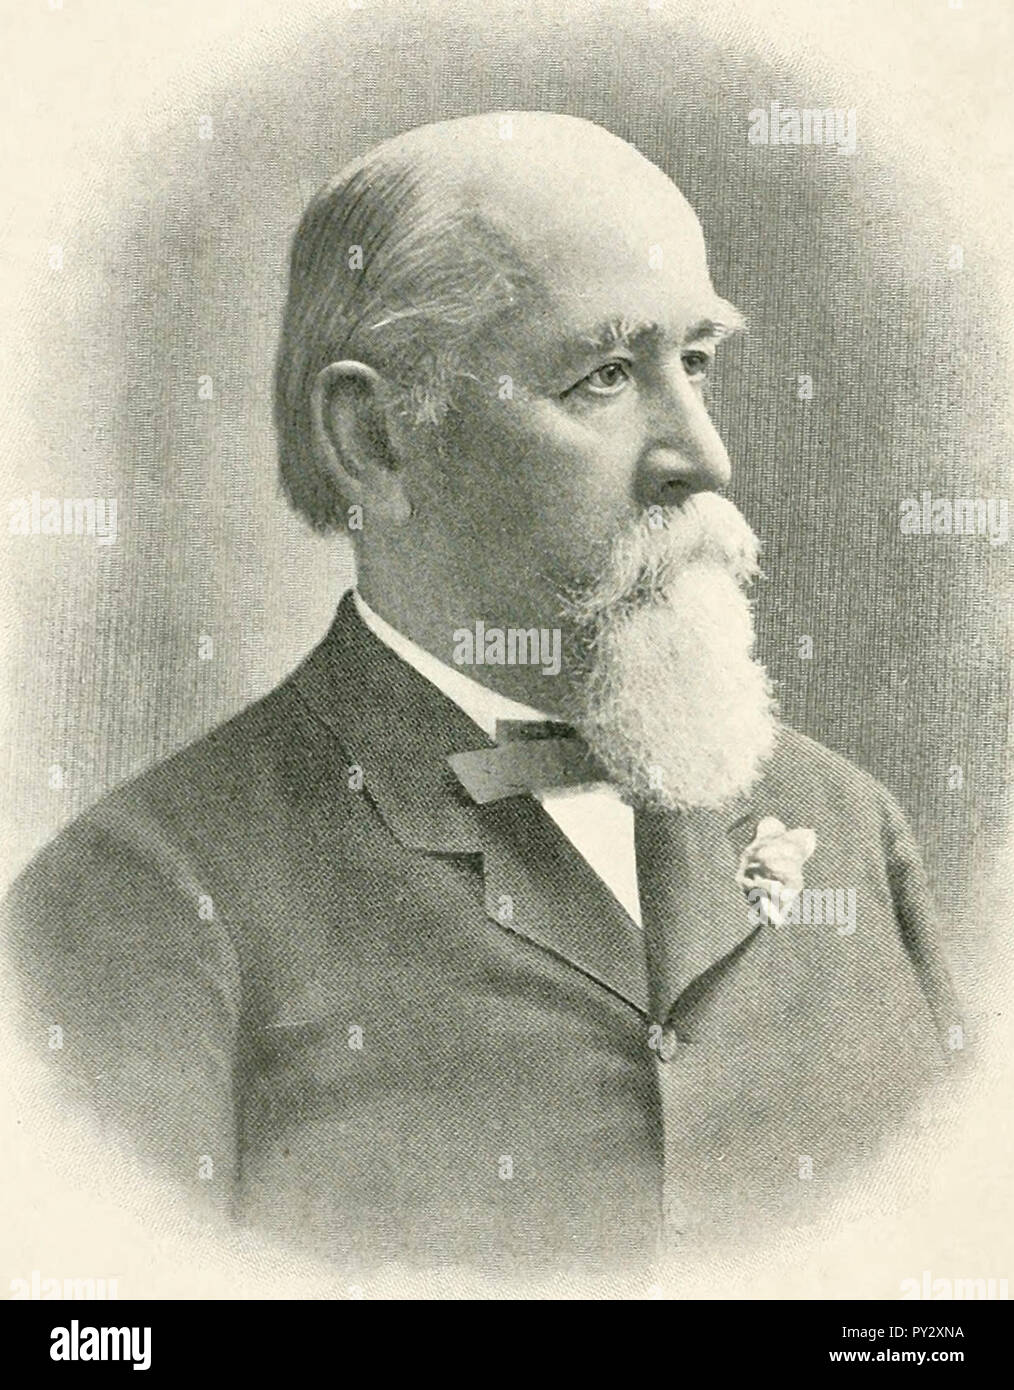 Portrait of Charles Eugene Flandrau, American lawyer who served on the Minnesota Supreme Court. He was also a colonel in the Union Army, circa 1900 - Stock Image